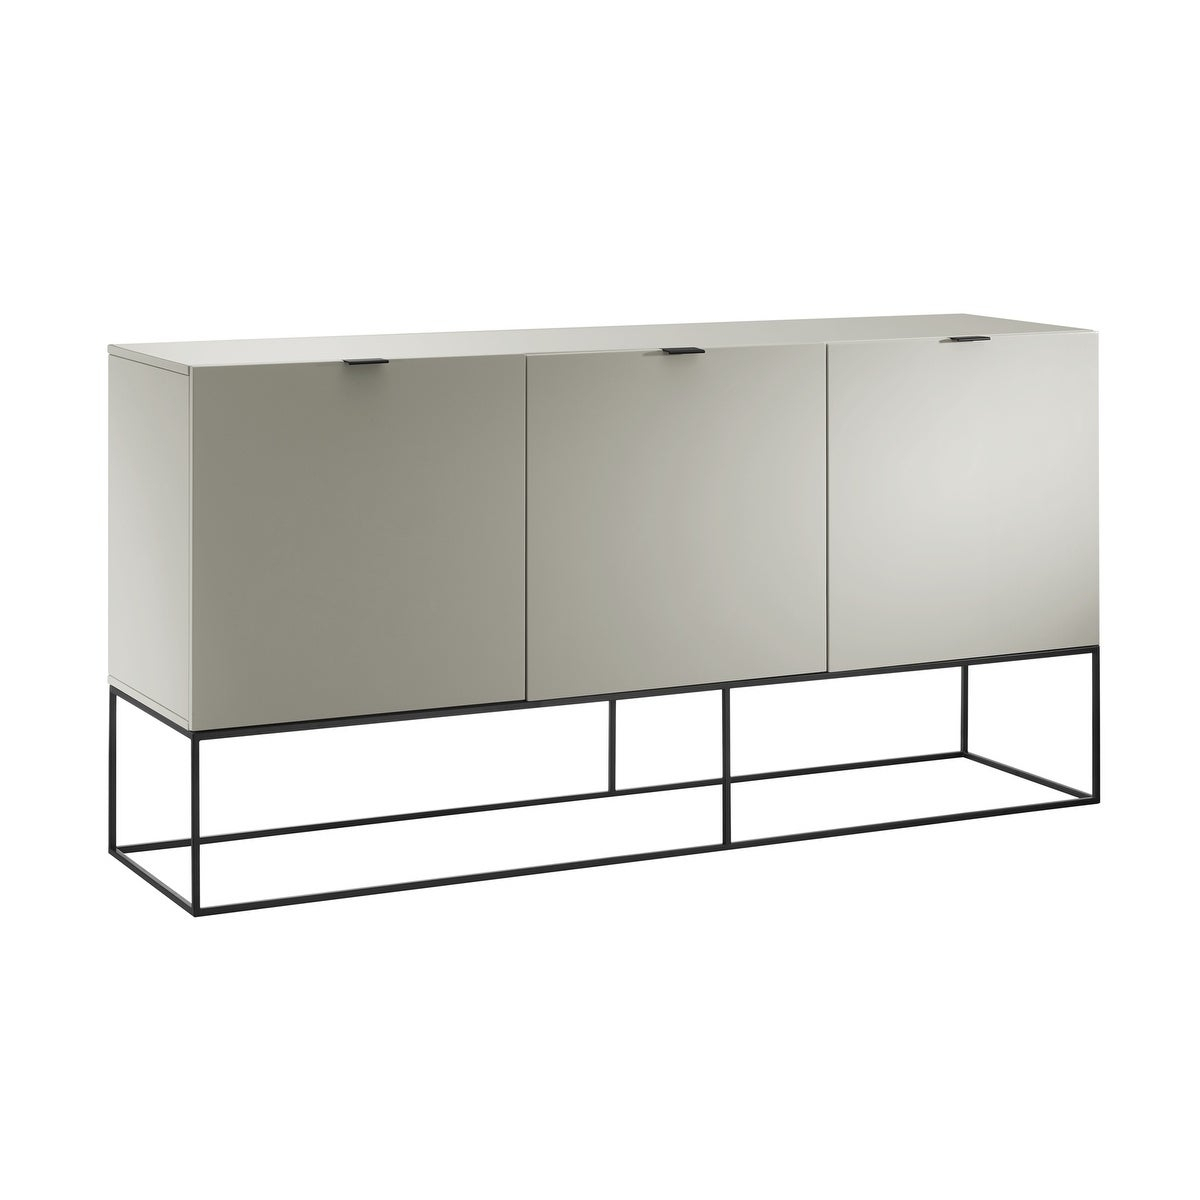 Vizzione High Gloss Light Gray Lacquer Buffetcasabianca Home For White Wood And Chrome Metal High Gloss Buffets (View 7 of 30)